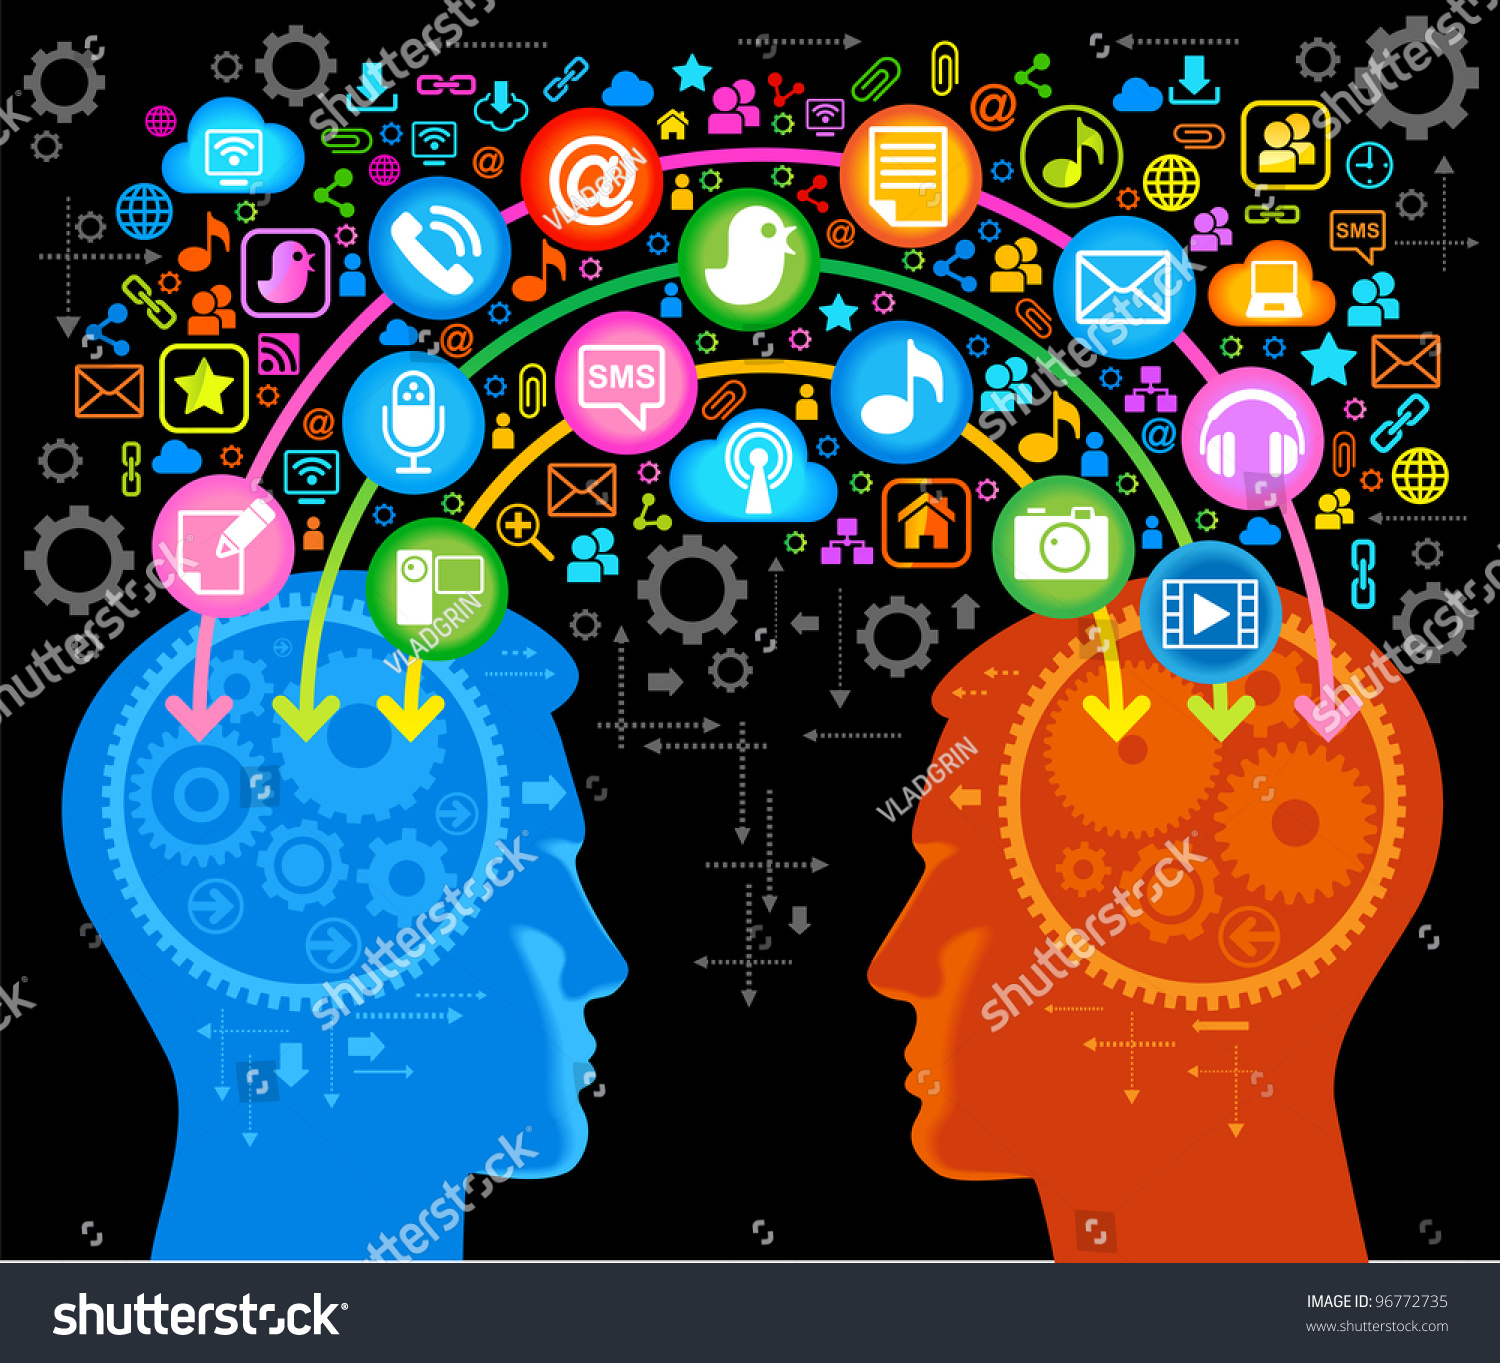 3 minute speech on social networks Social networks are now visited more the ideal would be an ajax or similar news feed that updated every minute or so without social network users like to see.